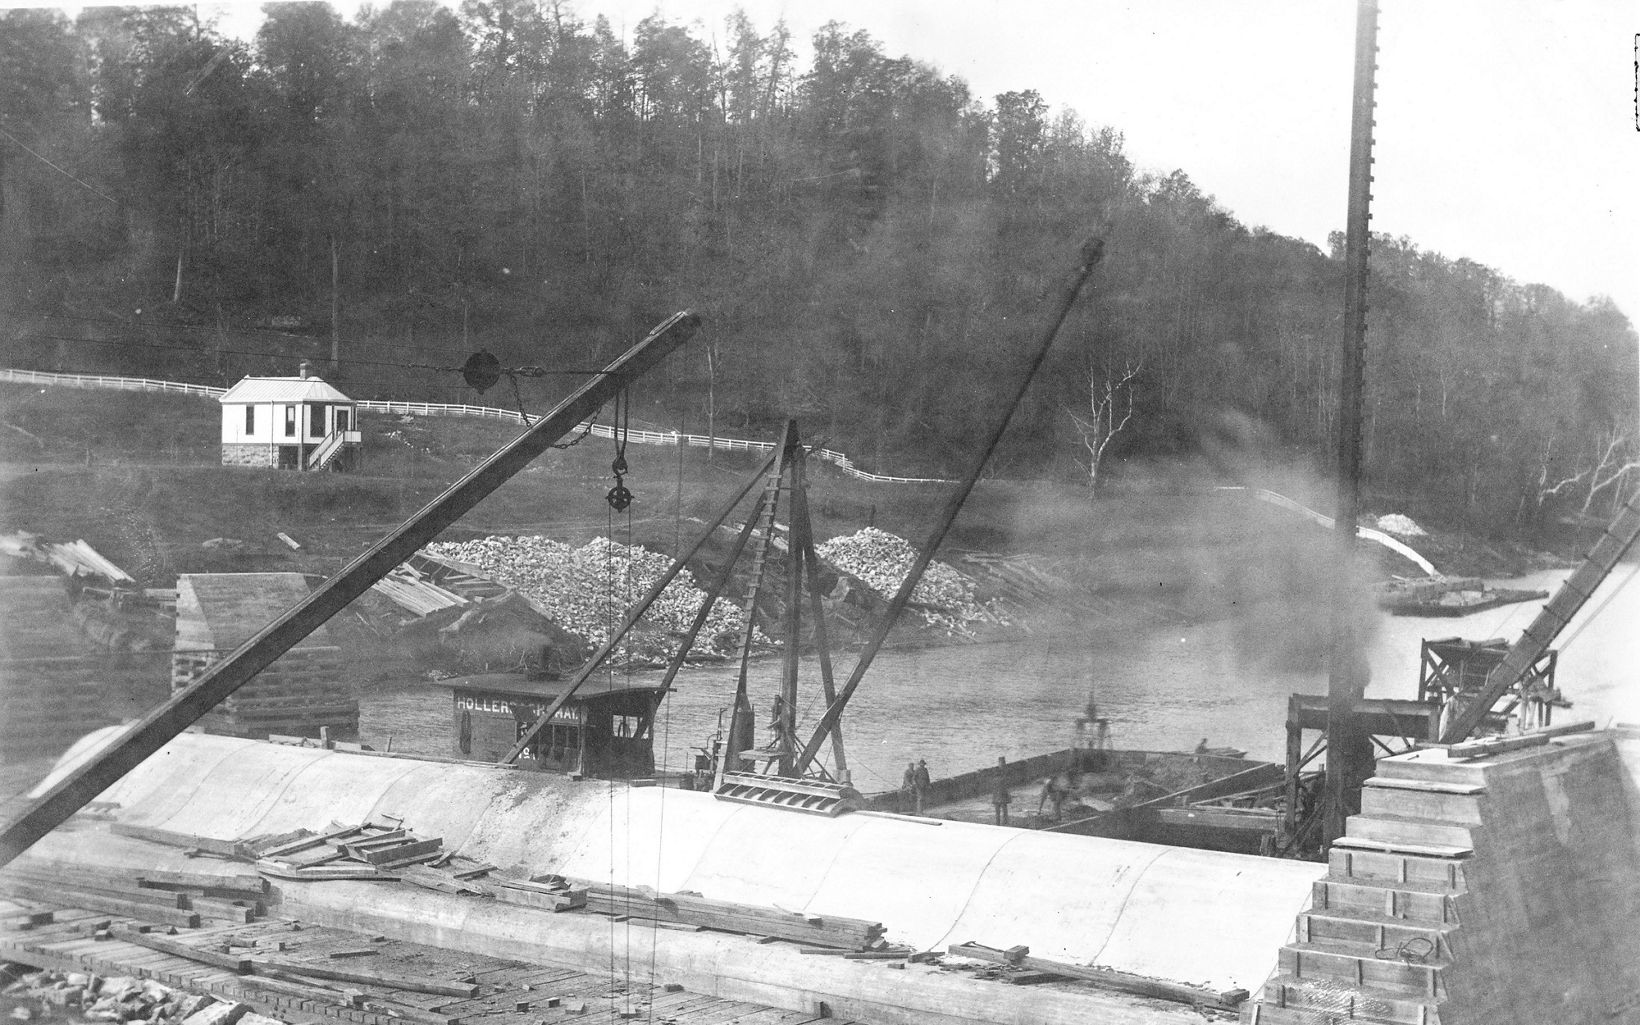 An historic image of building a dam.